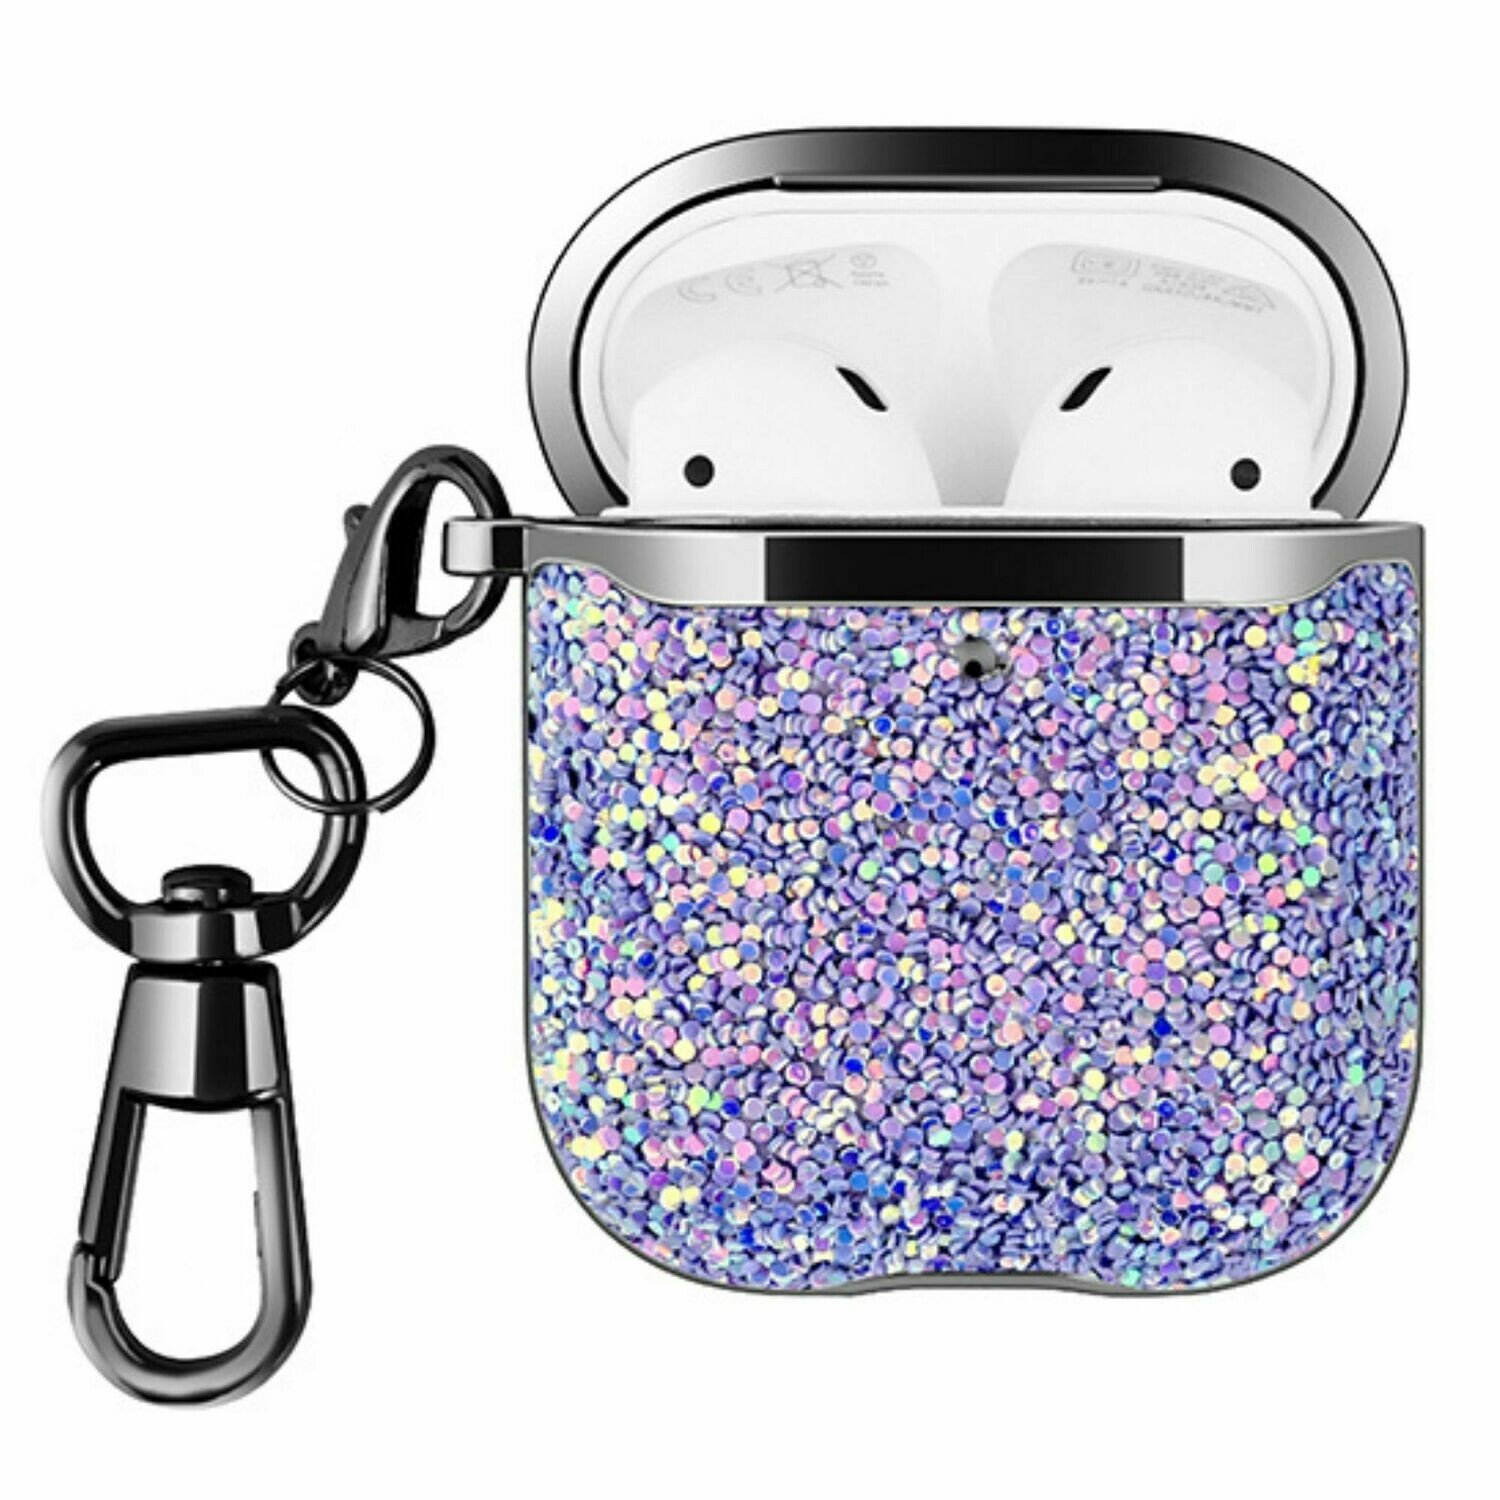 For Apple Airpods 1 2 Hard Case Cover Superior Quality Rhinestone Design TPU Protective | Shock Proof (Purple Dazzle)